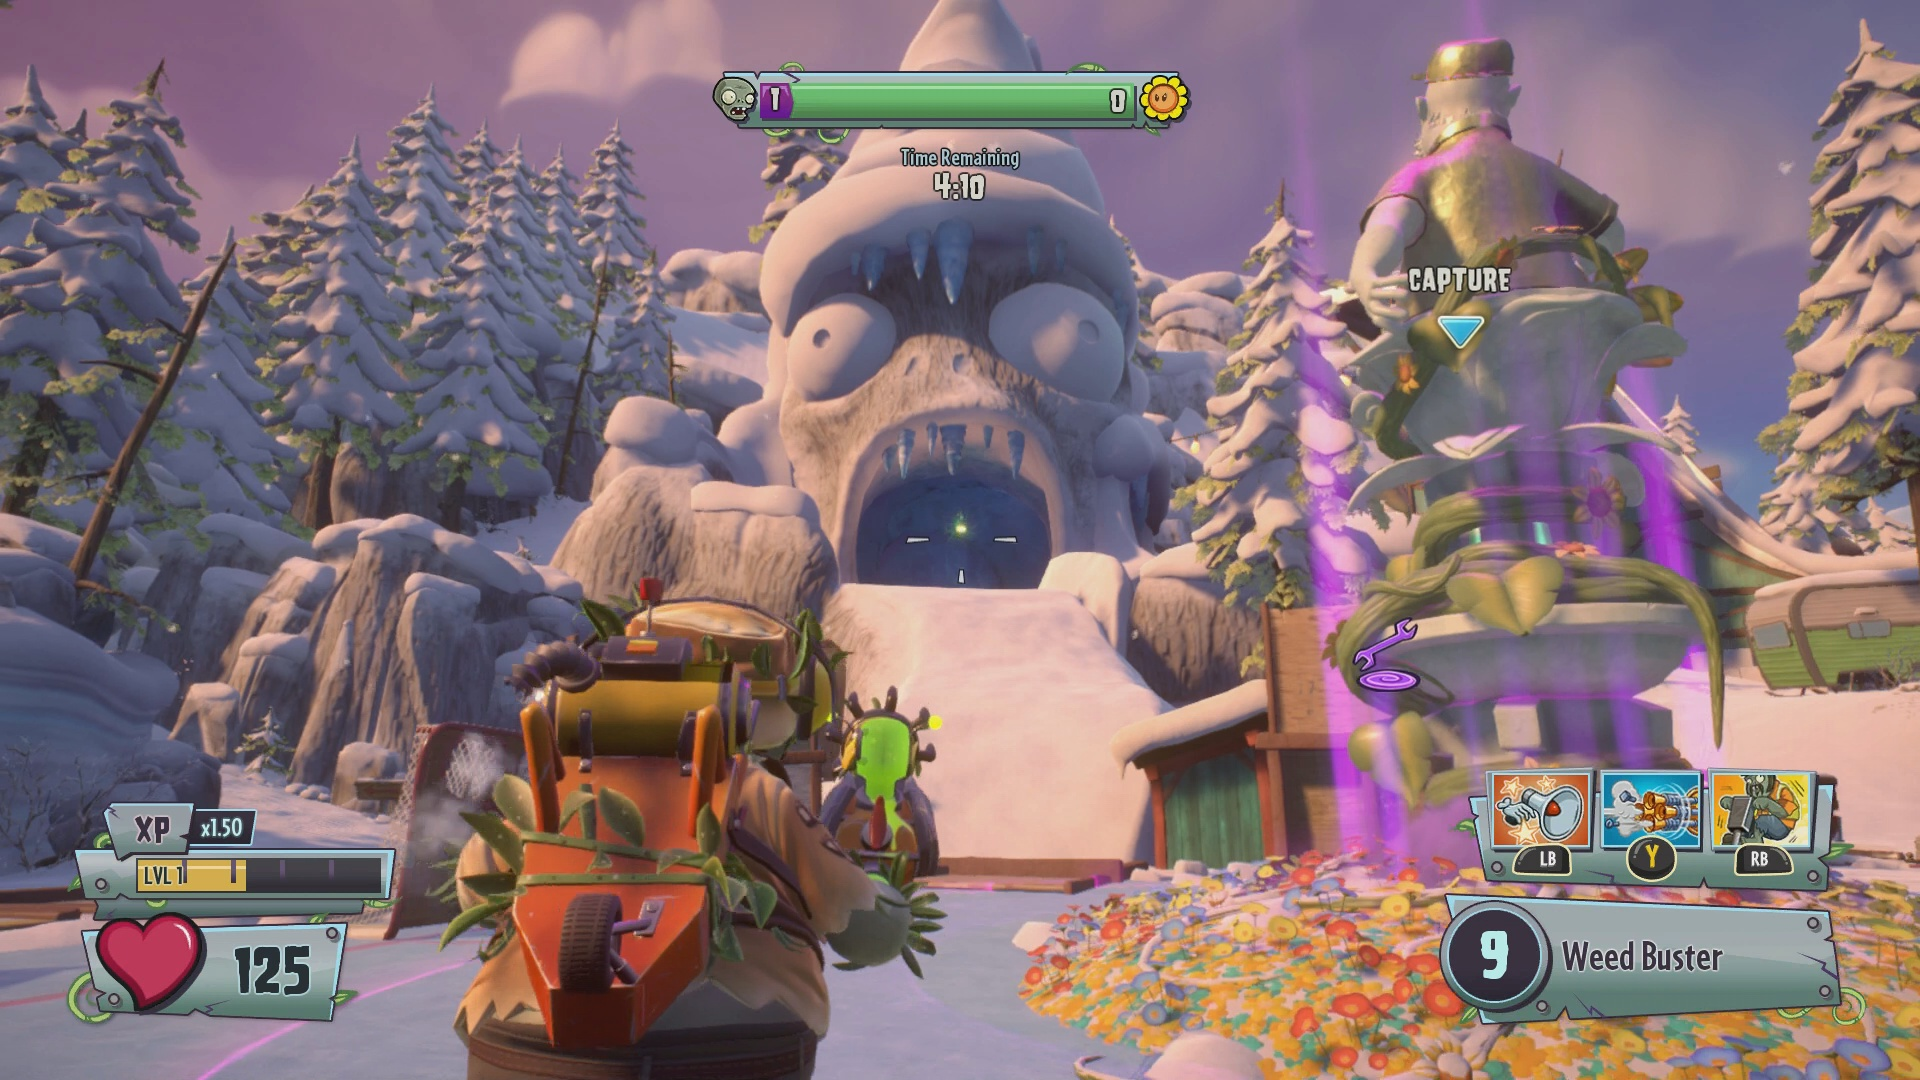 Plants vs Zombies Garden Warfare 2 All Gold Gnome Locations